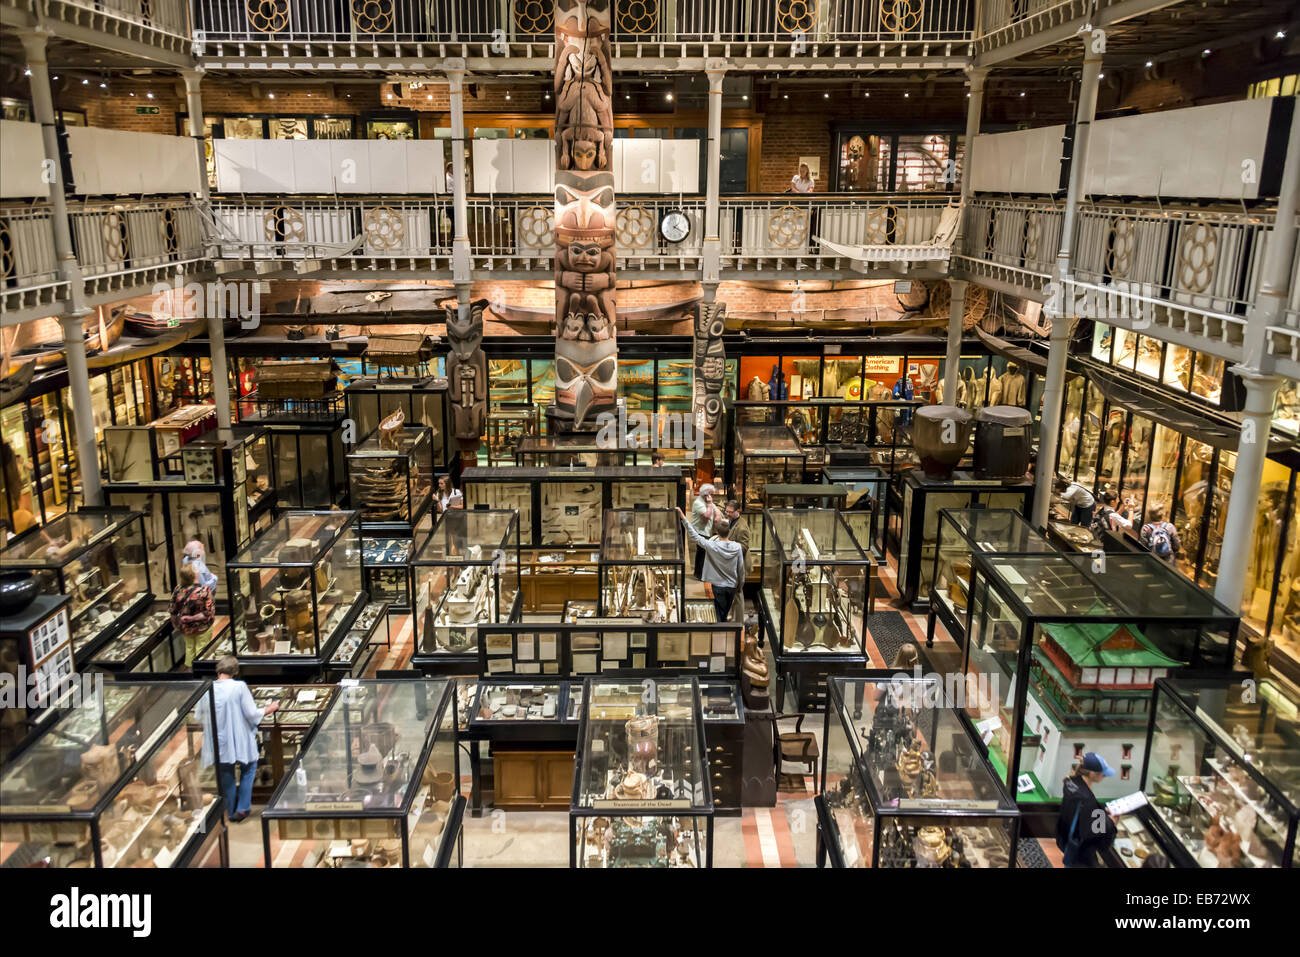 The Pitt Rivers Museum Is A Museum Displaying The